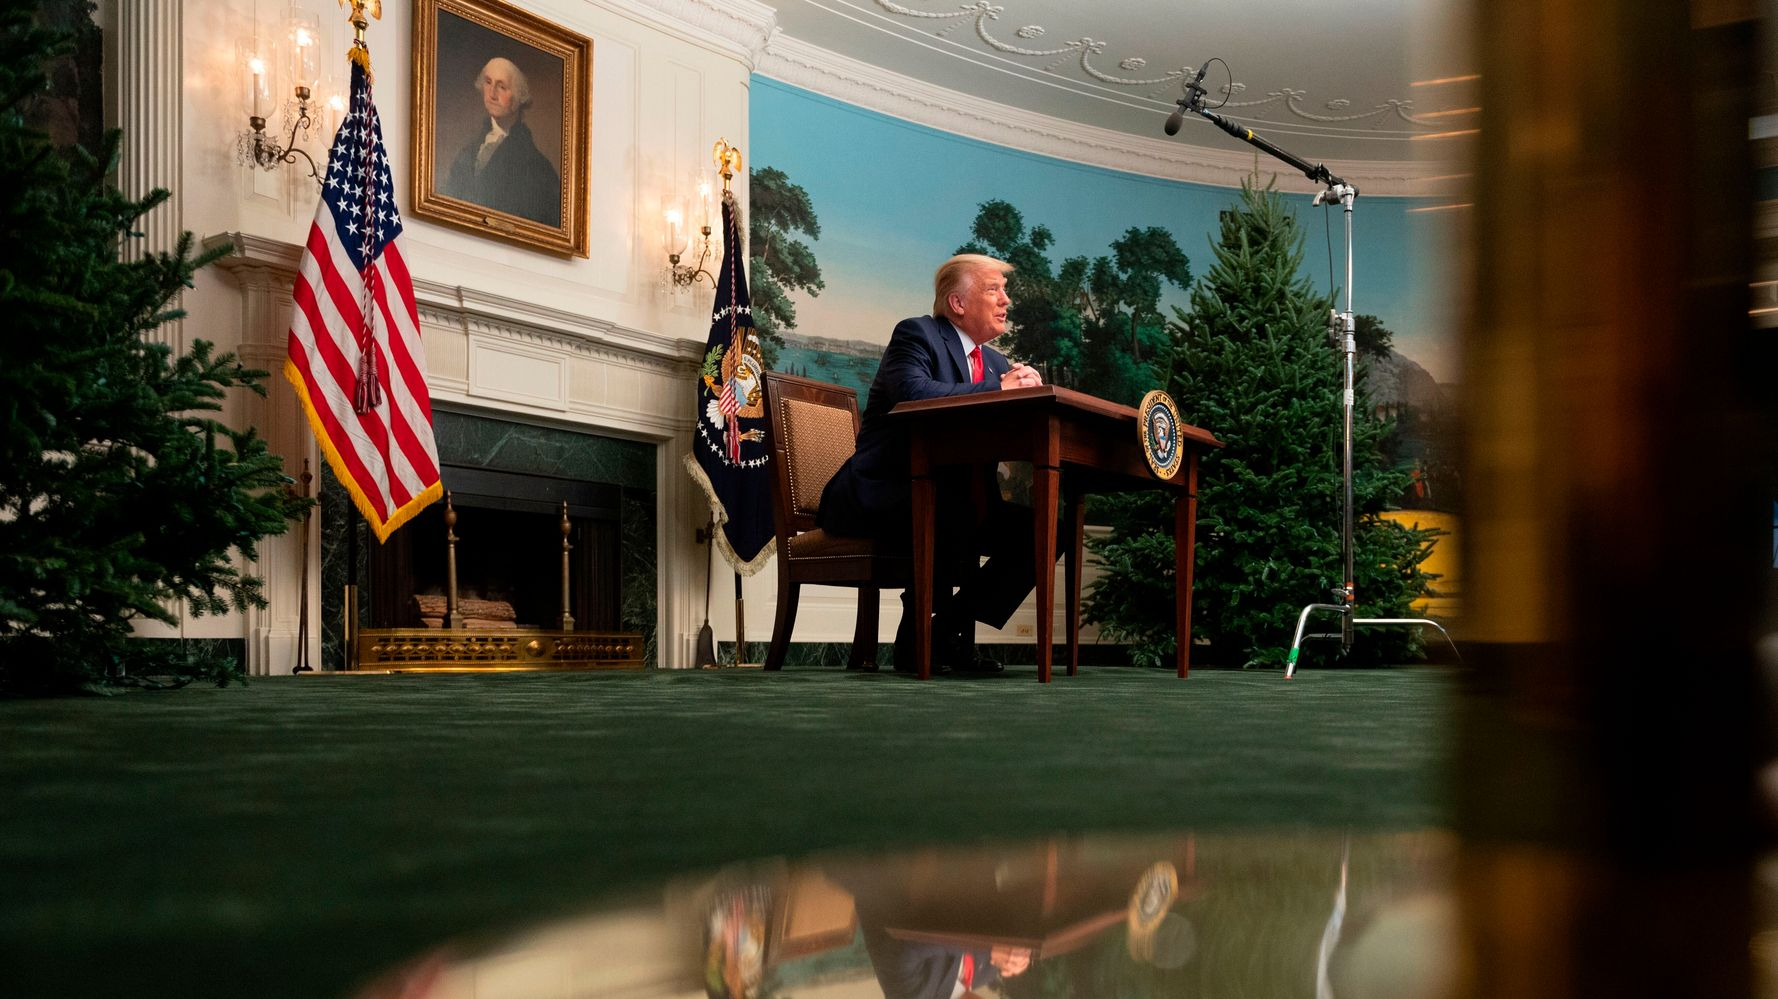 Donald Trump's Tiny-Looking Desk Is Now A Hilarious 'Photoshop Battle'